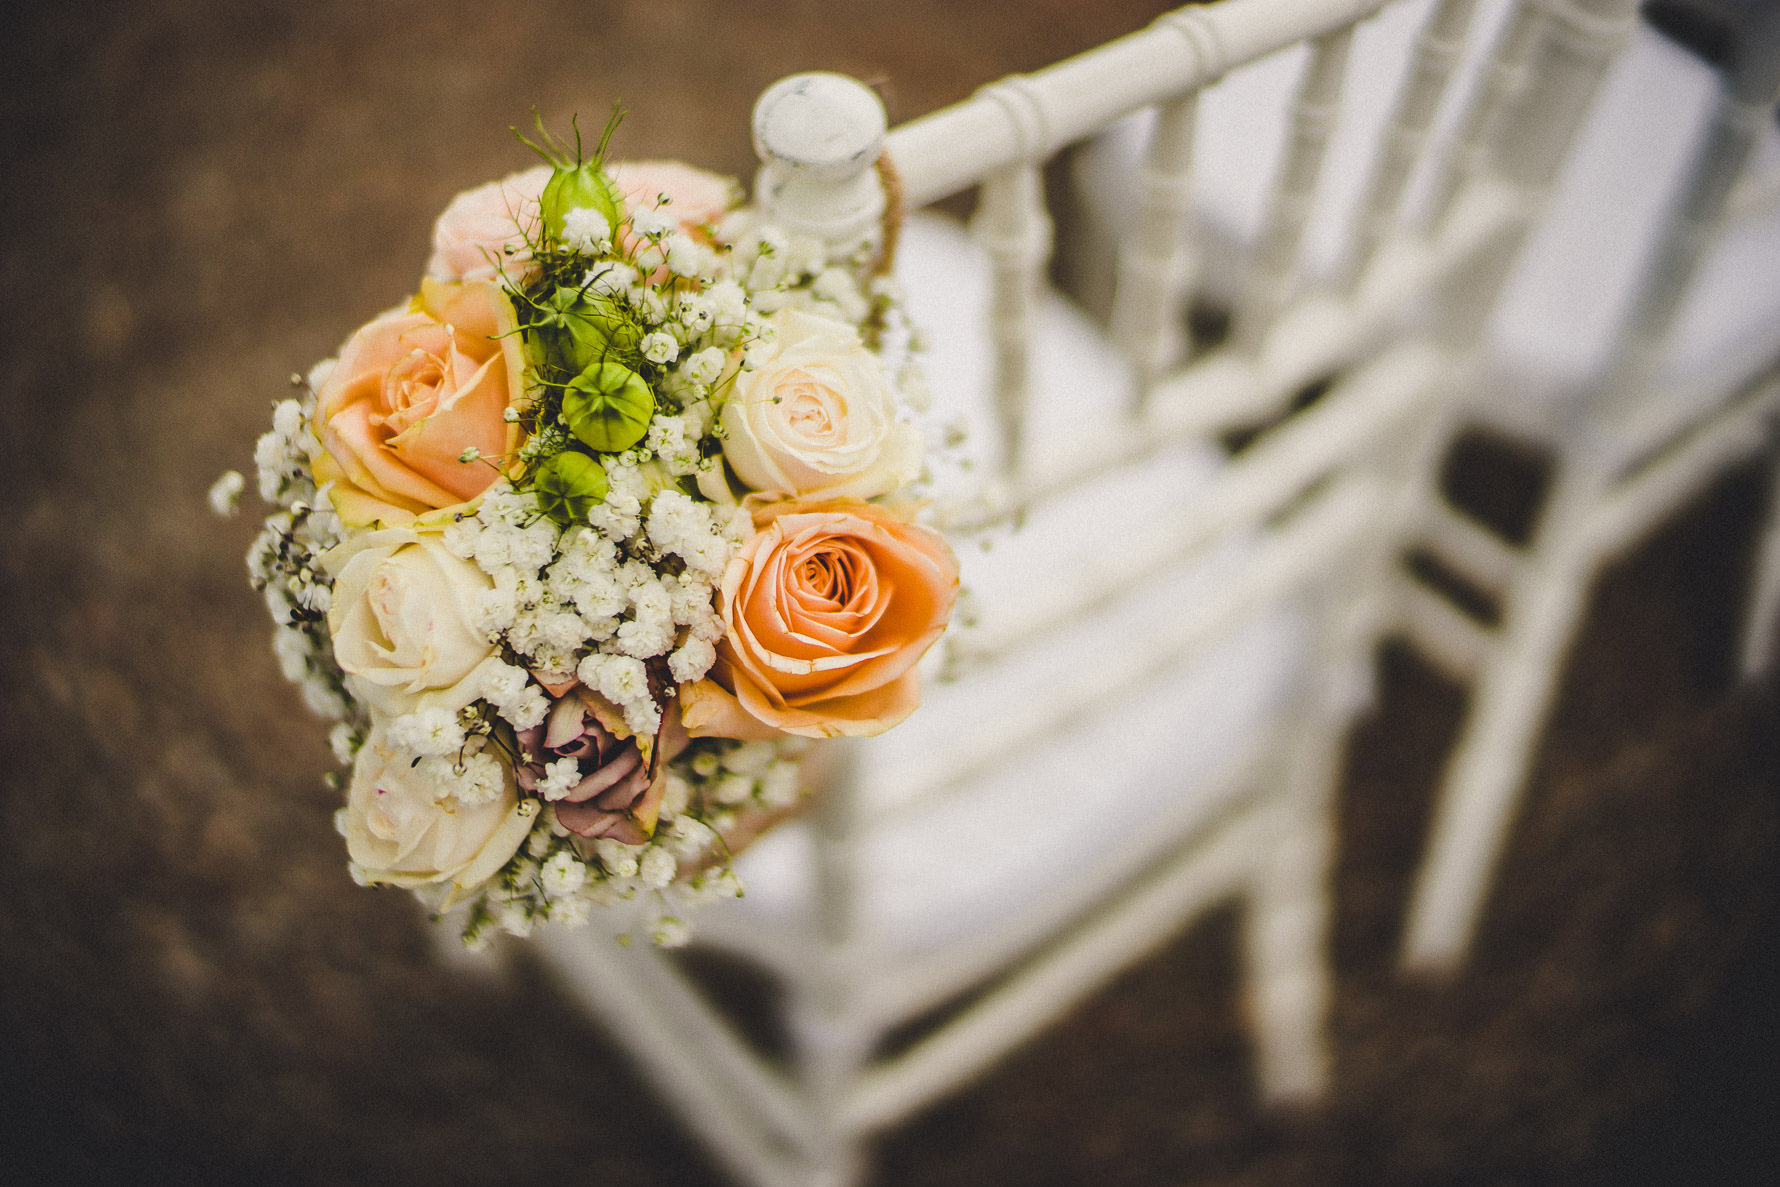 relax-wedding-with-tuscany-landscape